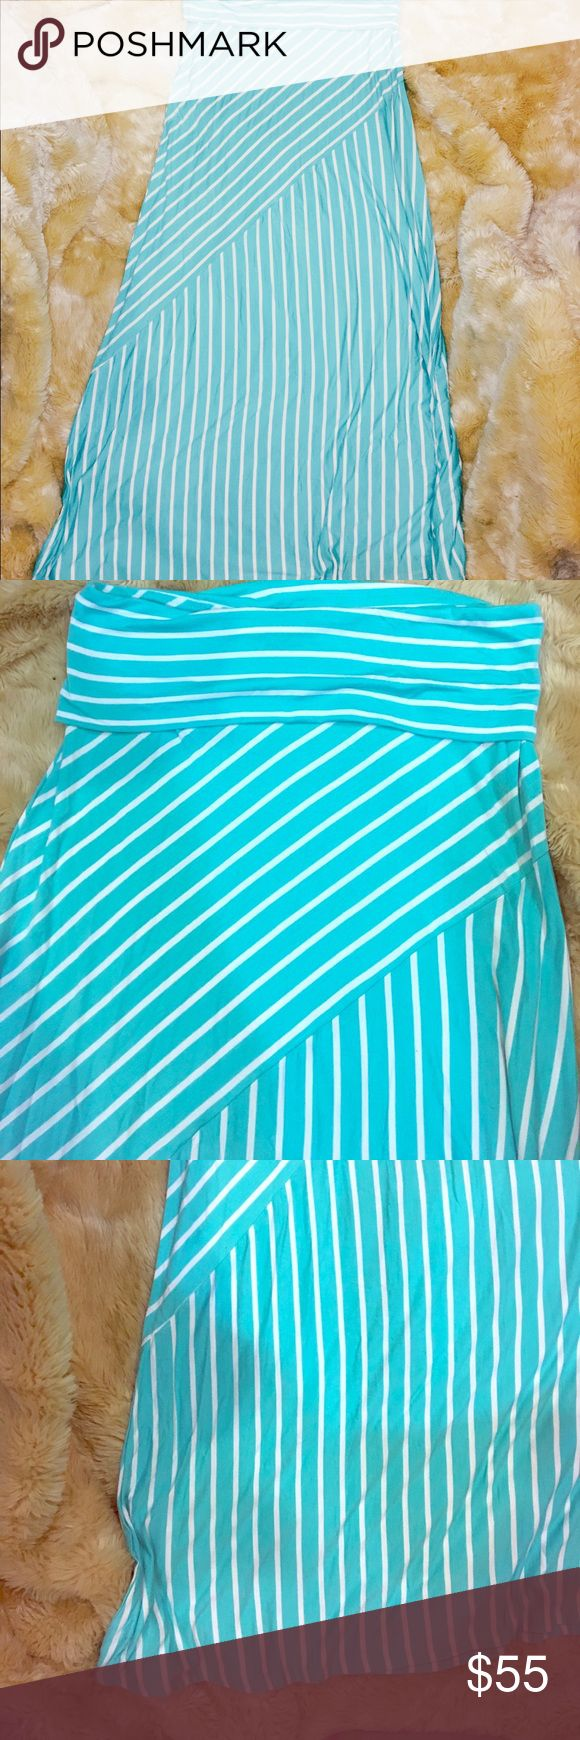 """NEW! MIK Striped Maxi Skirt (Turquoise/White) Striped maxi skirt can also double as a dress (think tube top and belt. It is about ankle length if worn as a skirt. The stripes are going diagonally along the dress. #HelloSummer This skirt screams summer with it free, flowy, light and bright, beautiful color. It looks like the color of the carribbean ocean. It is 45.5""""long with good stretch. MIK Skirts Maxi"""